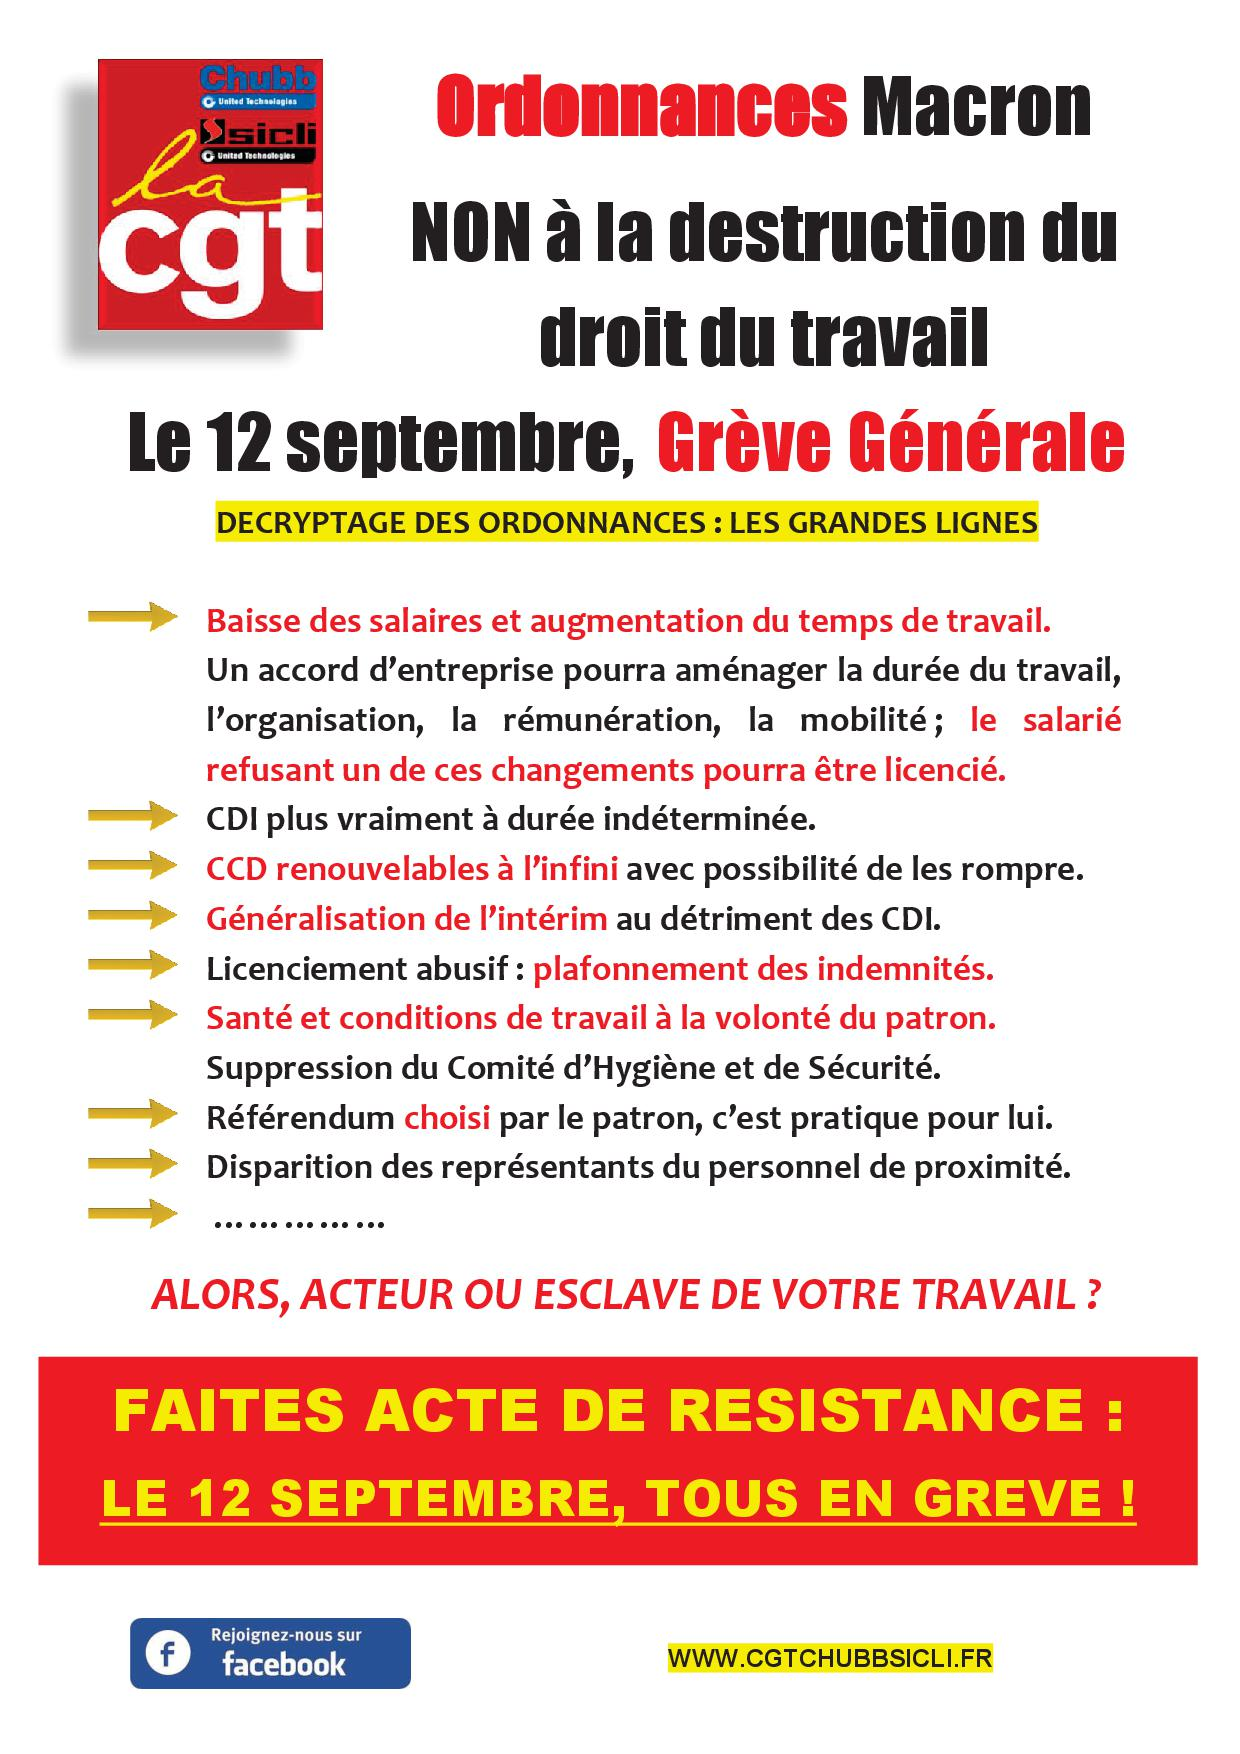 Ordonnances macron 12 sept cgt chubb france